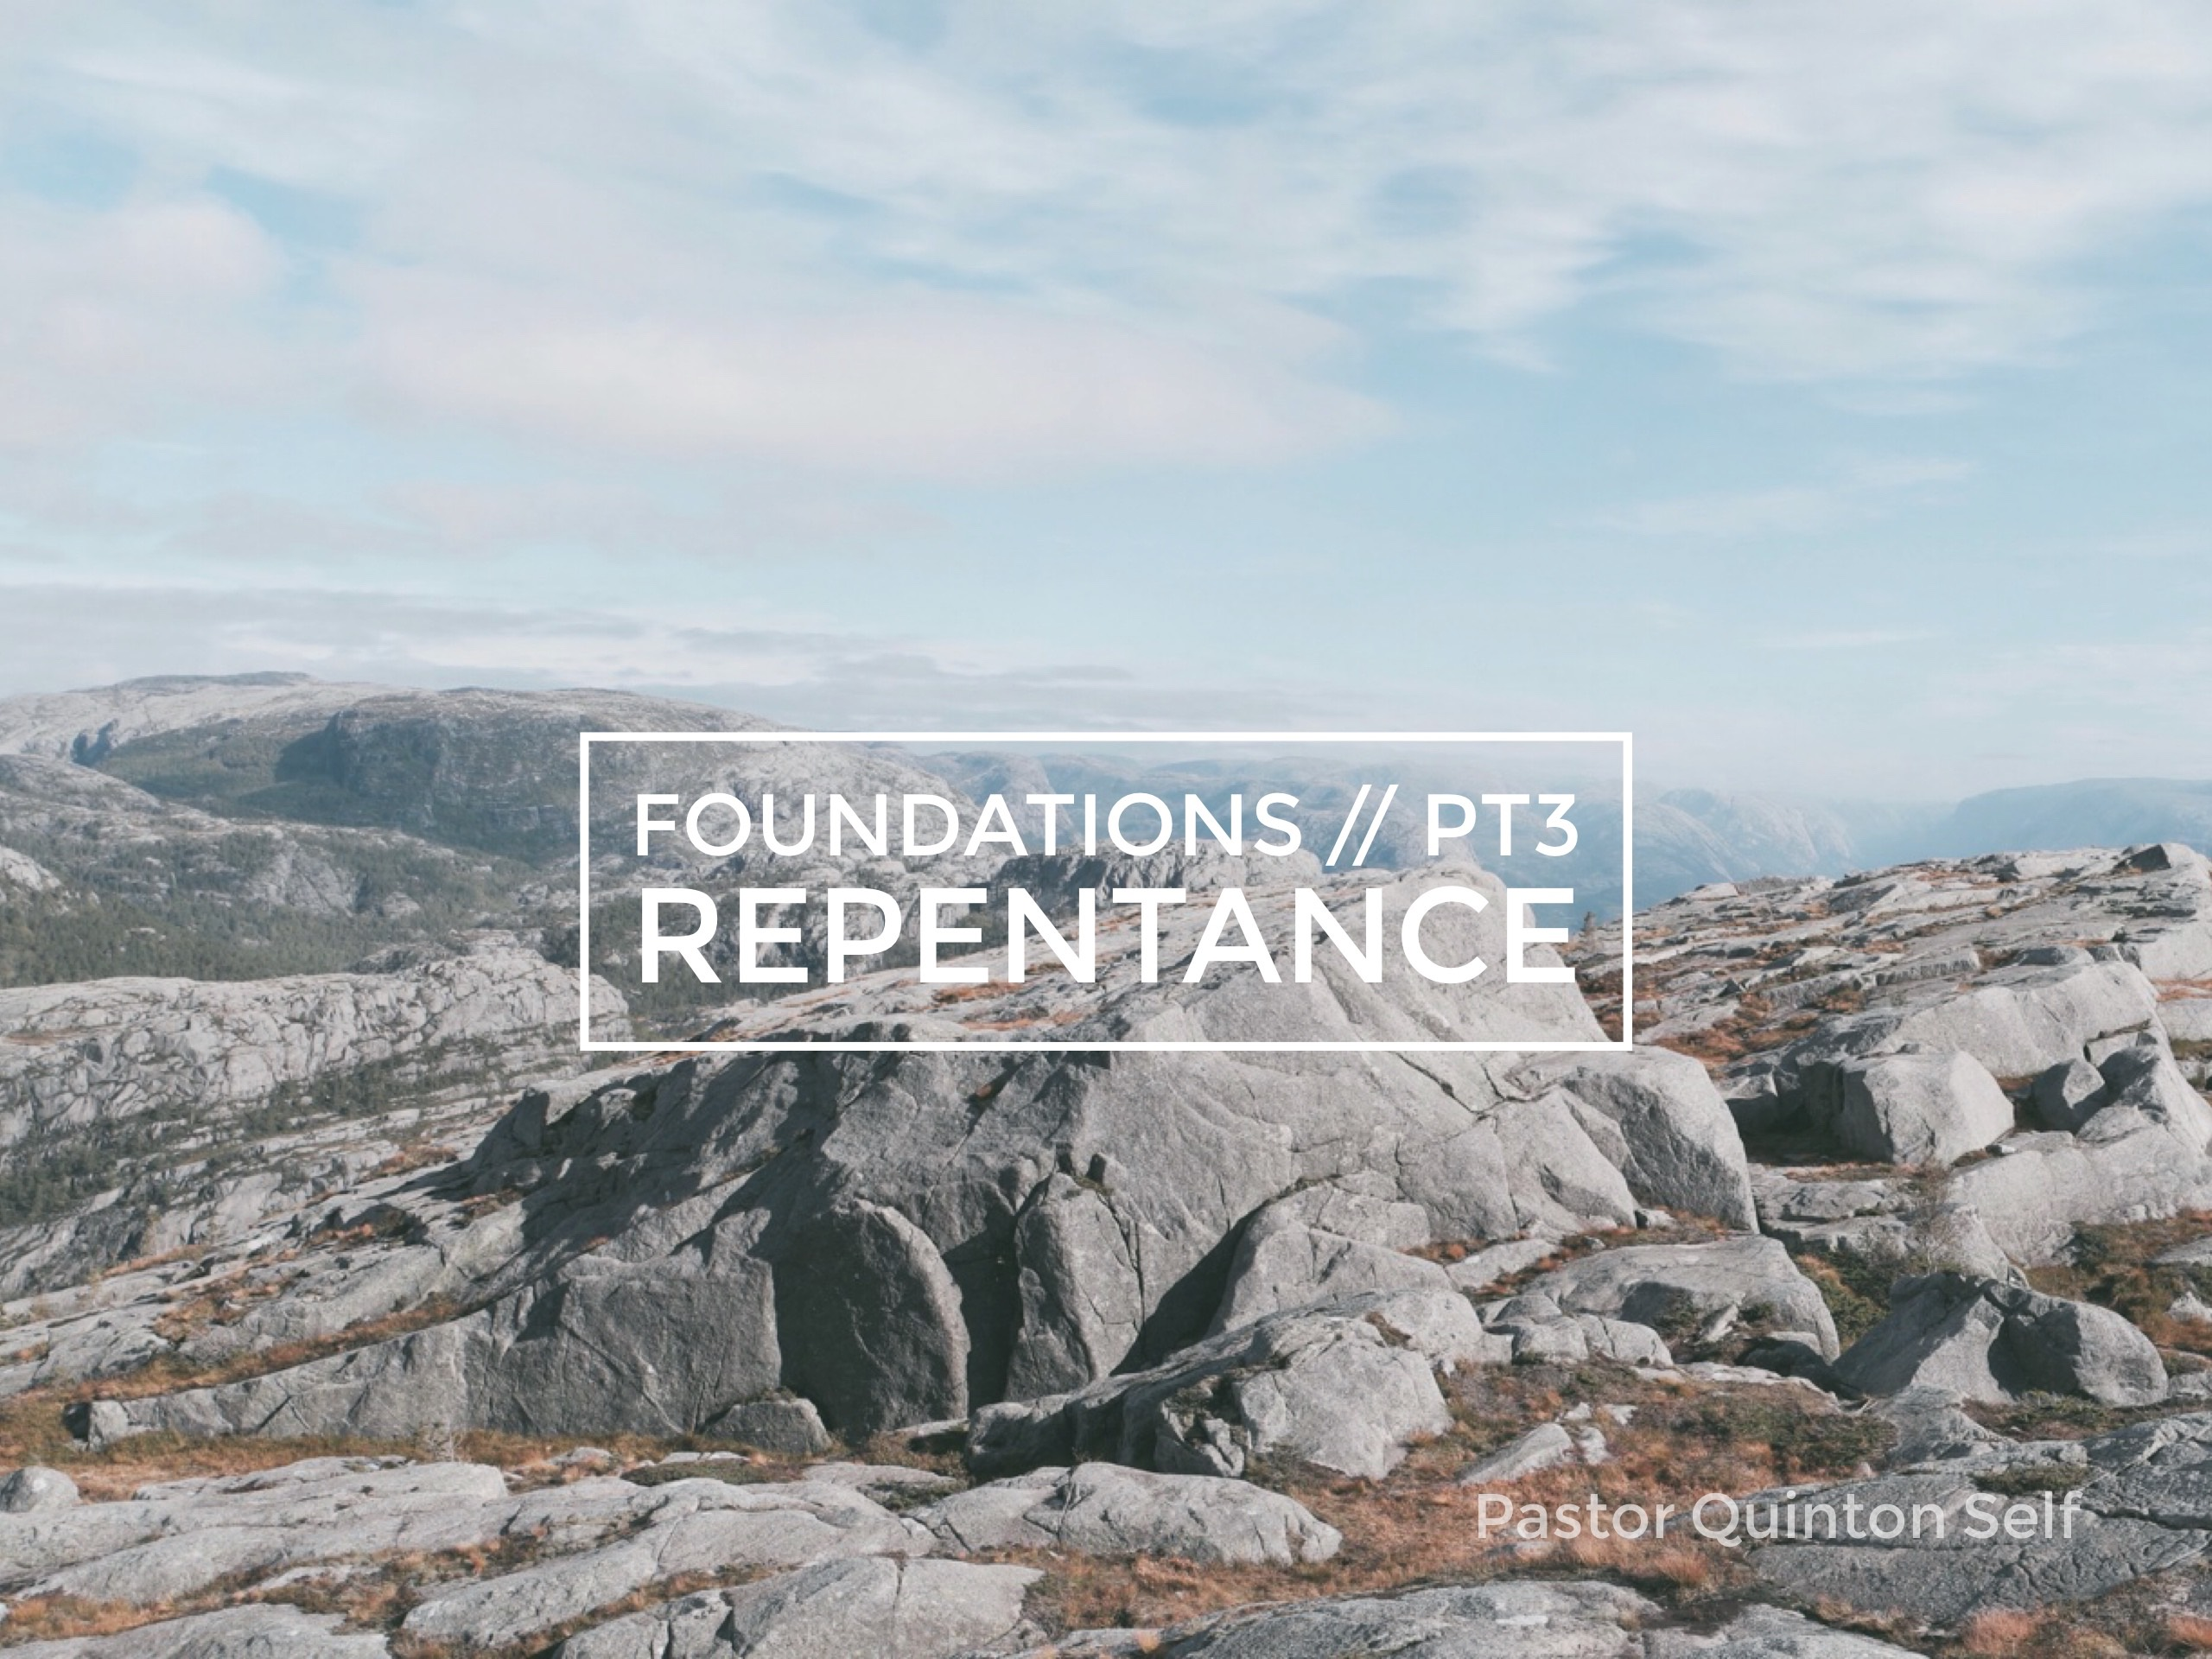 Foundations, Part 3: Repentance